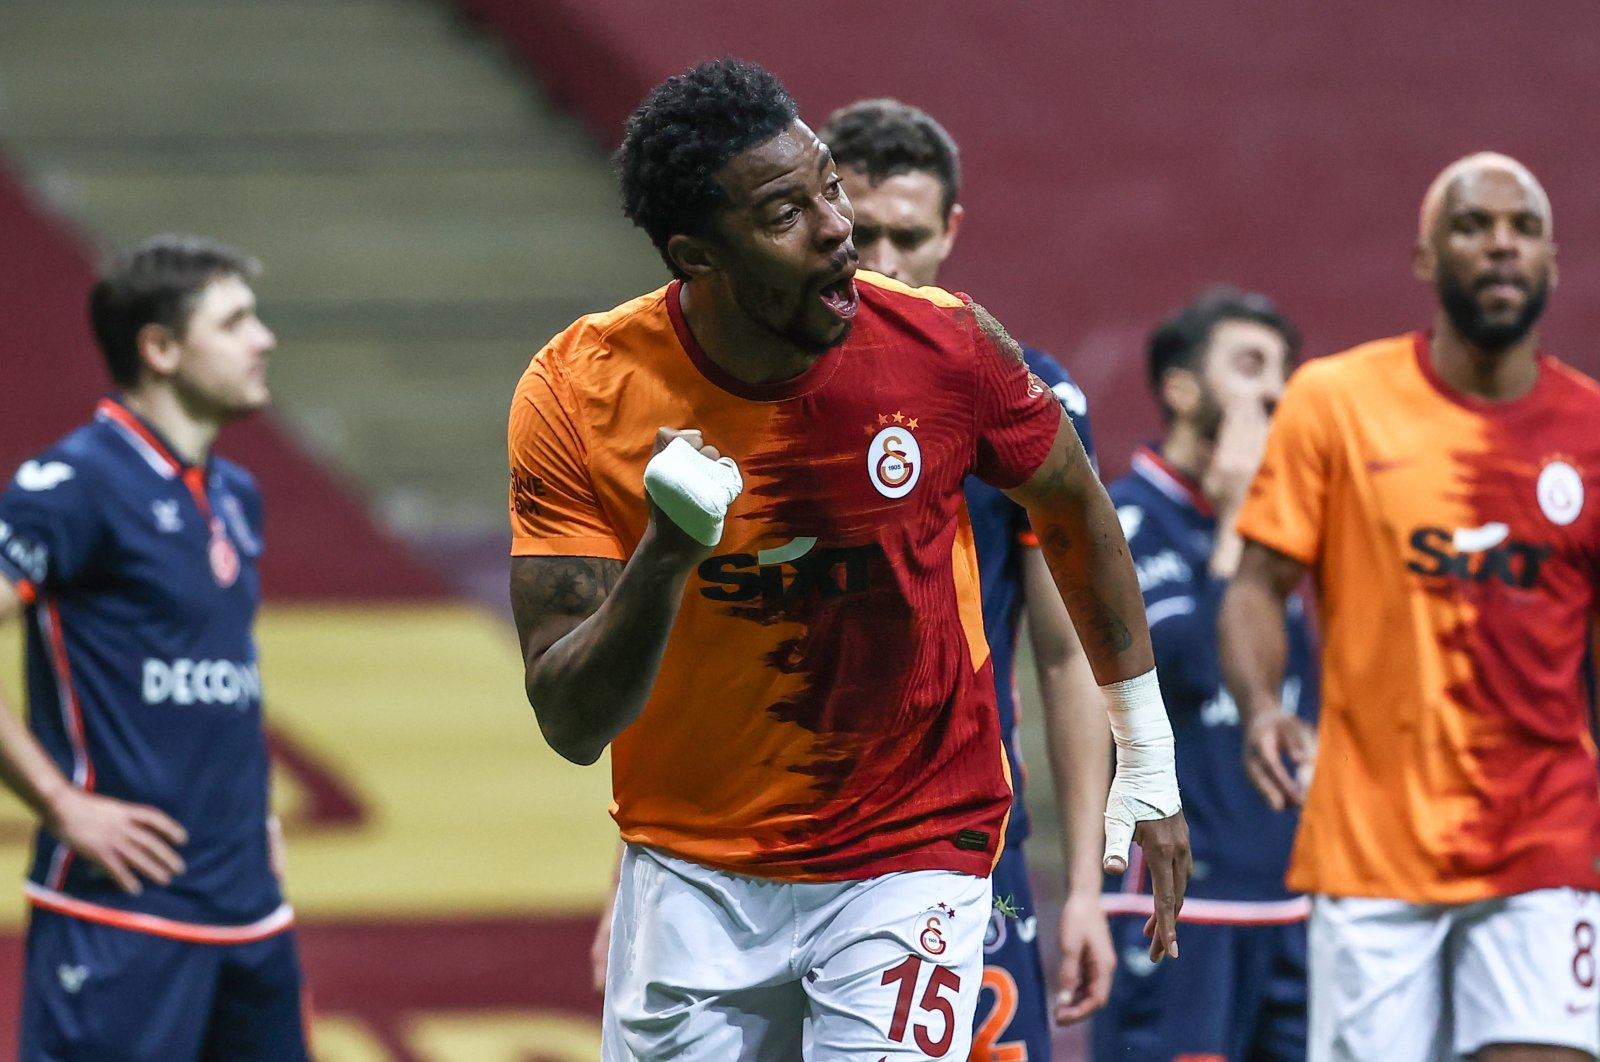 Galatasaray's Ryan Donk celebrates after scoring a goal in the match against Istanbul Başakşehir at the Ali Sami Yen Sports Complex on Feb. 2, 2021. (AA Photo)